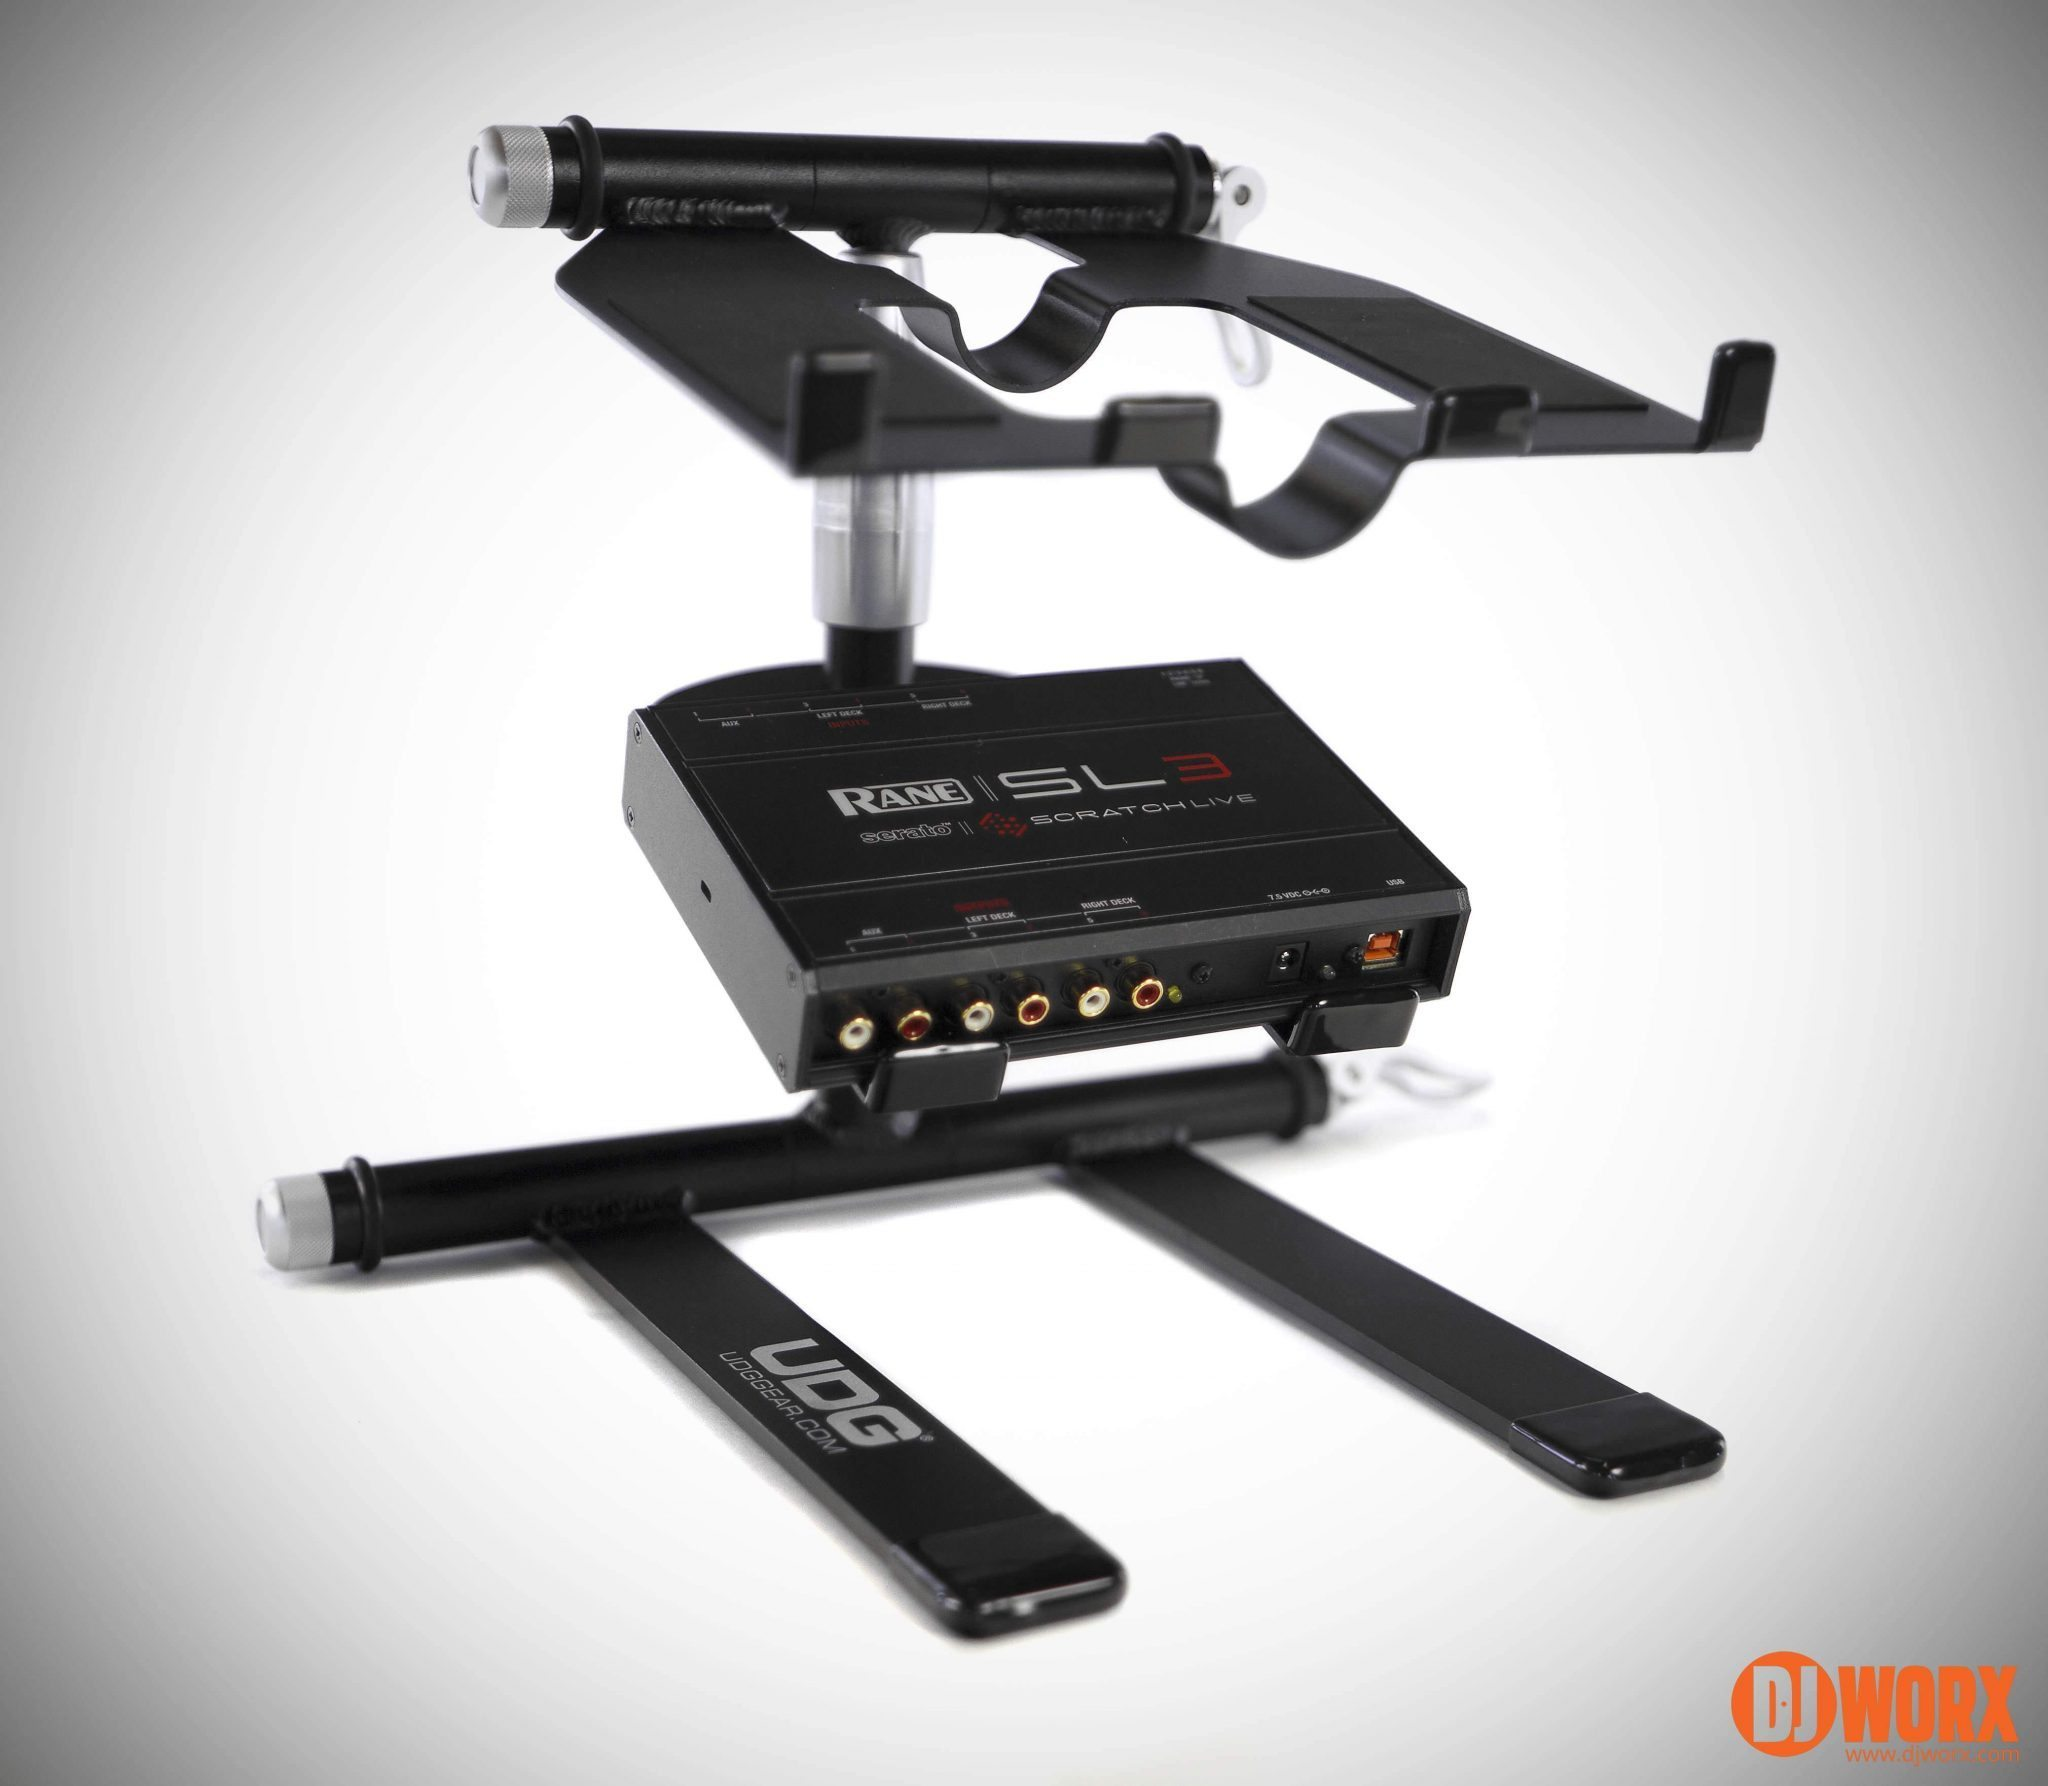 Review udg creator dj laptop stand djworx for Stand createur